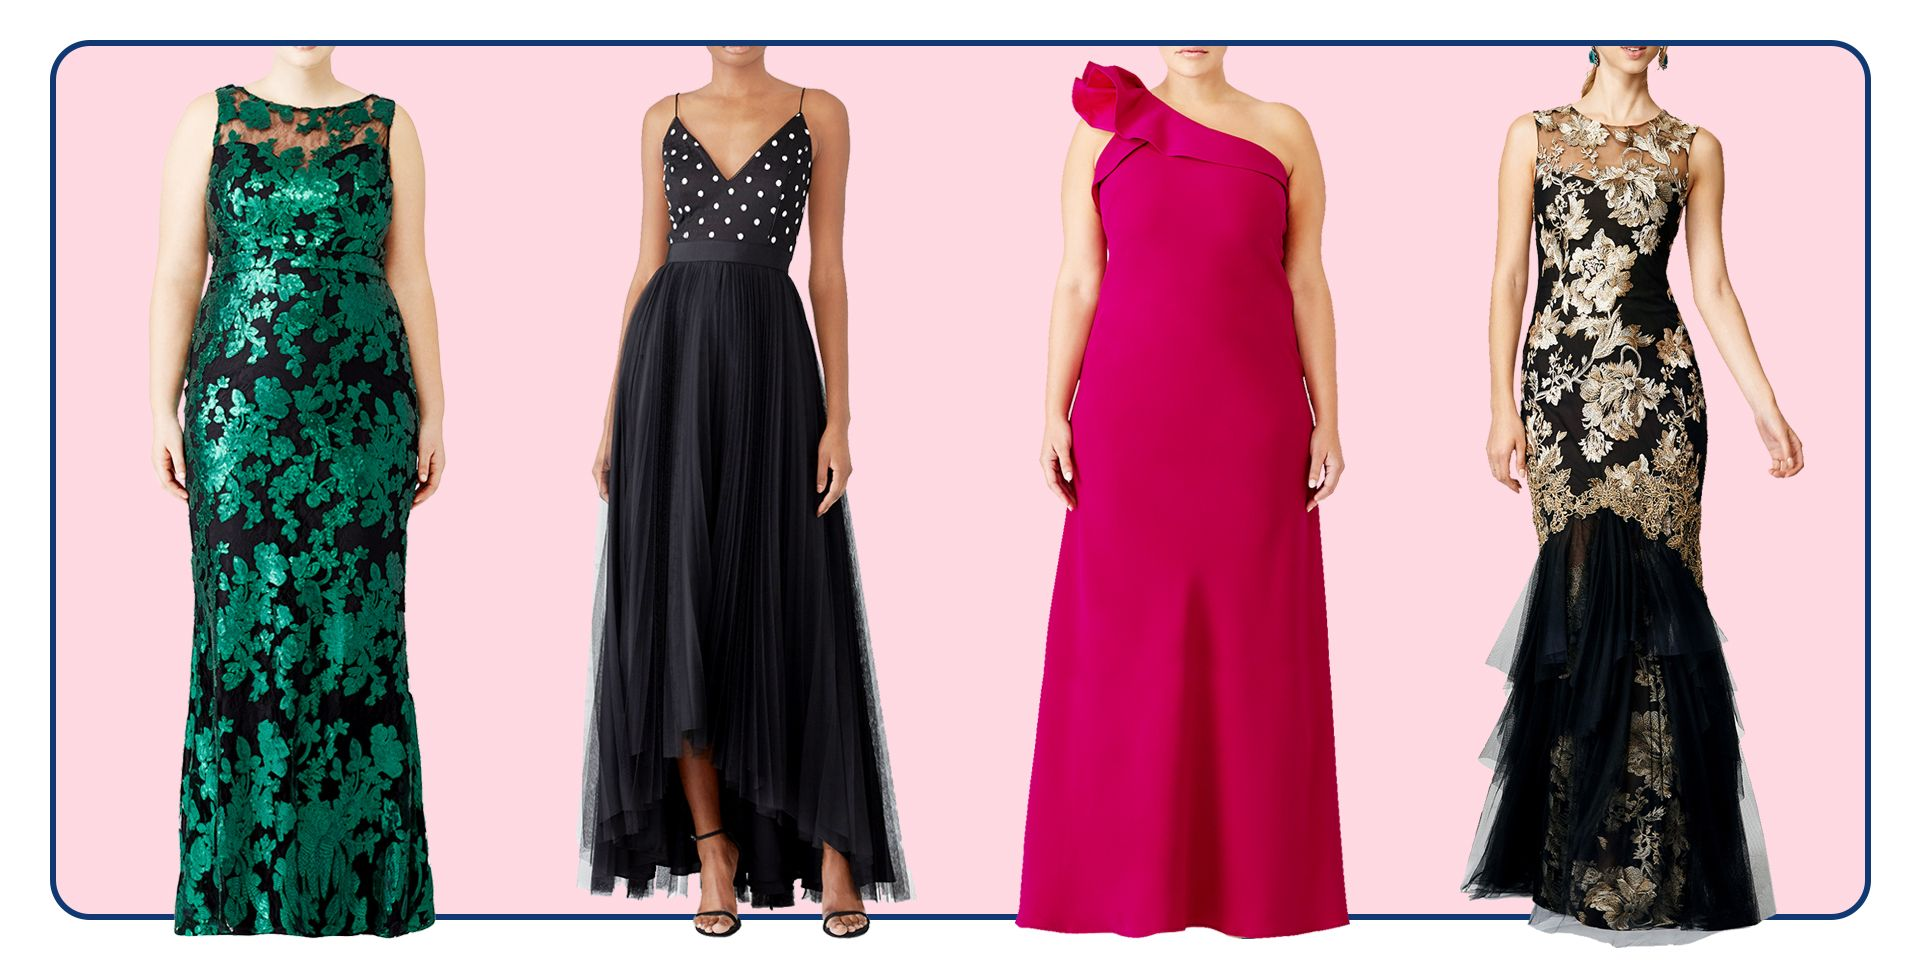 Prom Dress Rental - Where to Rent Prom Dresses